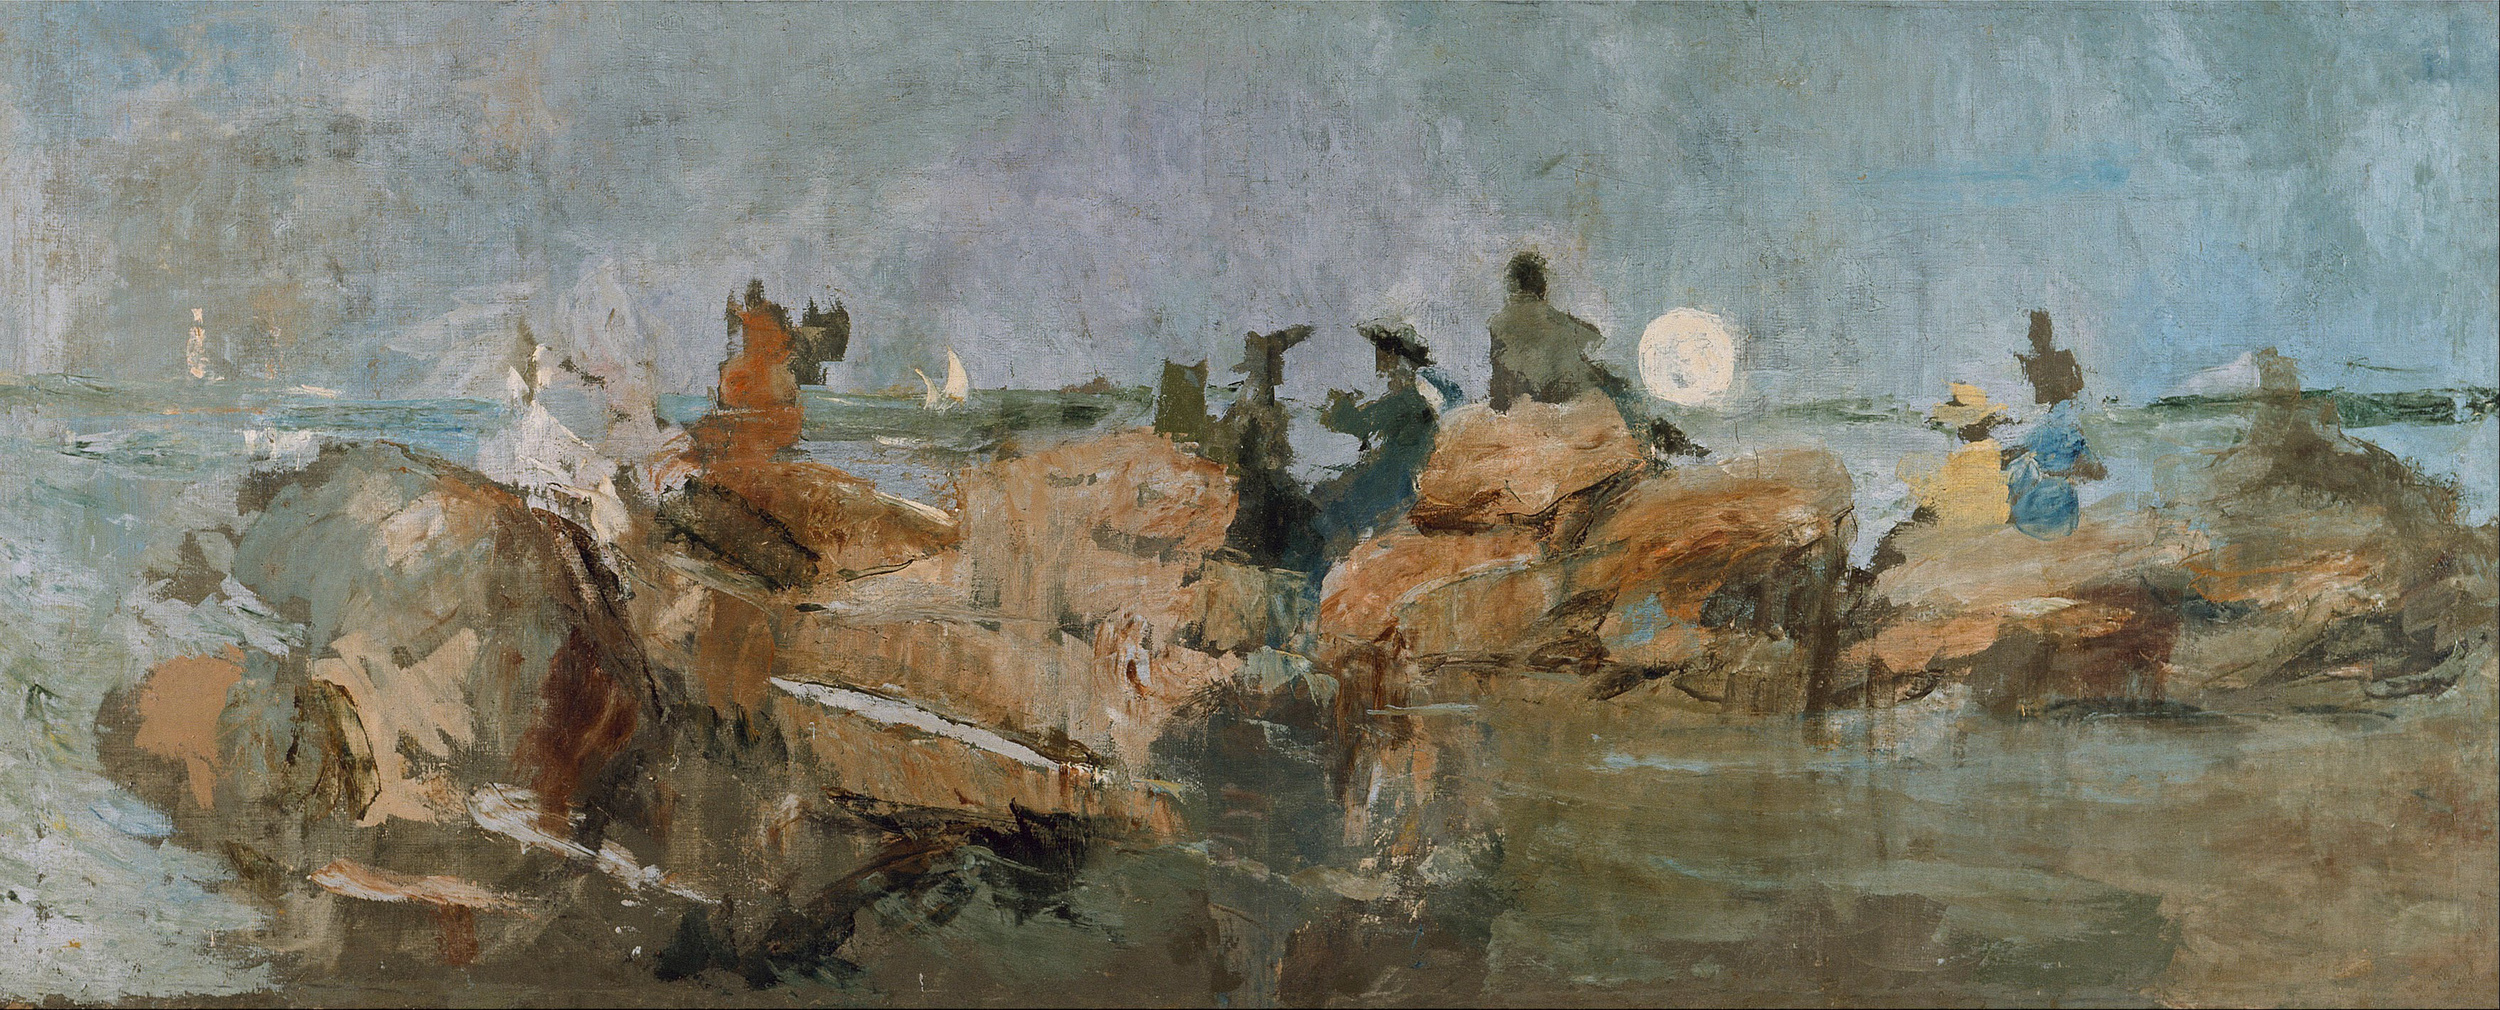 Ignacio Pinazo Camarlench, Sunset on the Jetty III, Institut Valencià d'Art Modern (IVAM)